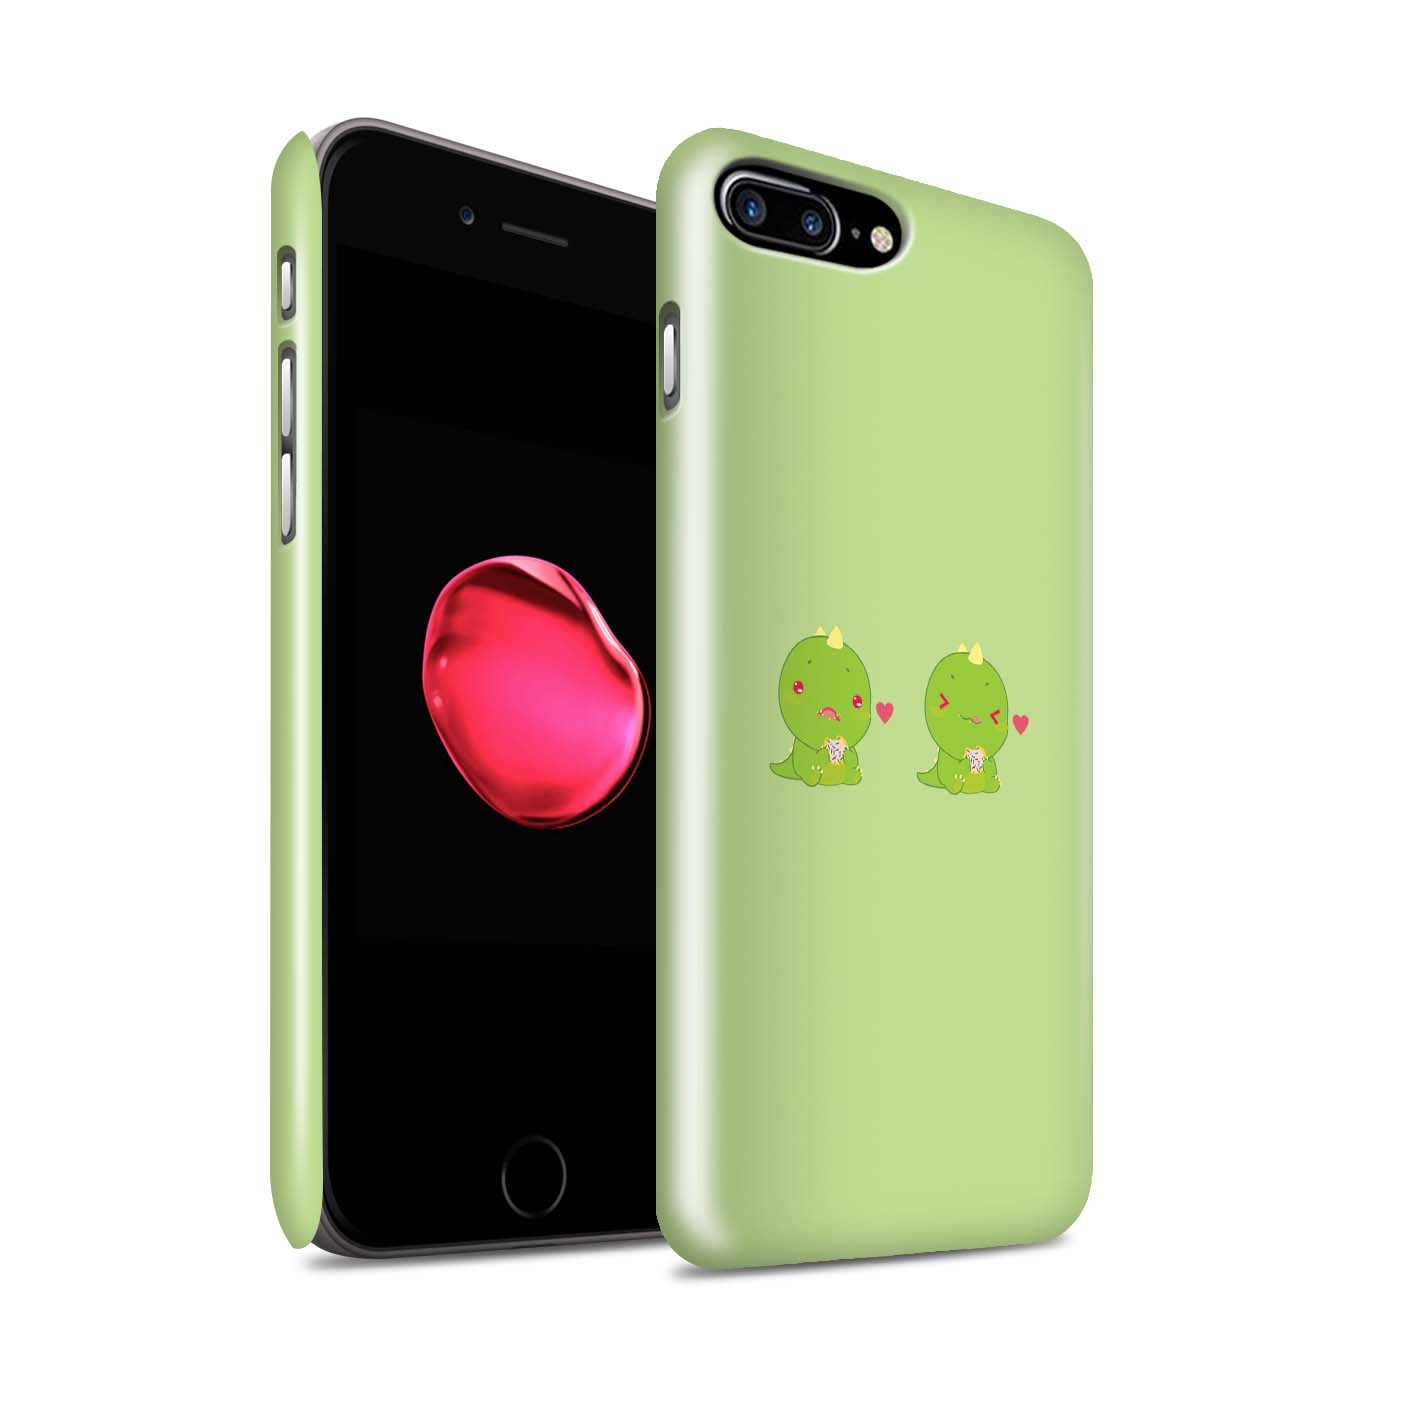 STUFF4-Gloss-Phone-Case-for-Apple-iPhone-8-Plus-Cartoon-Dinosaurs